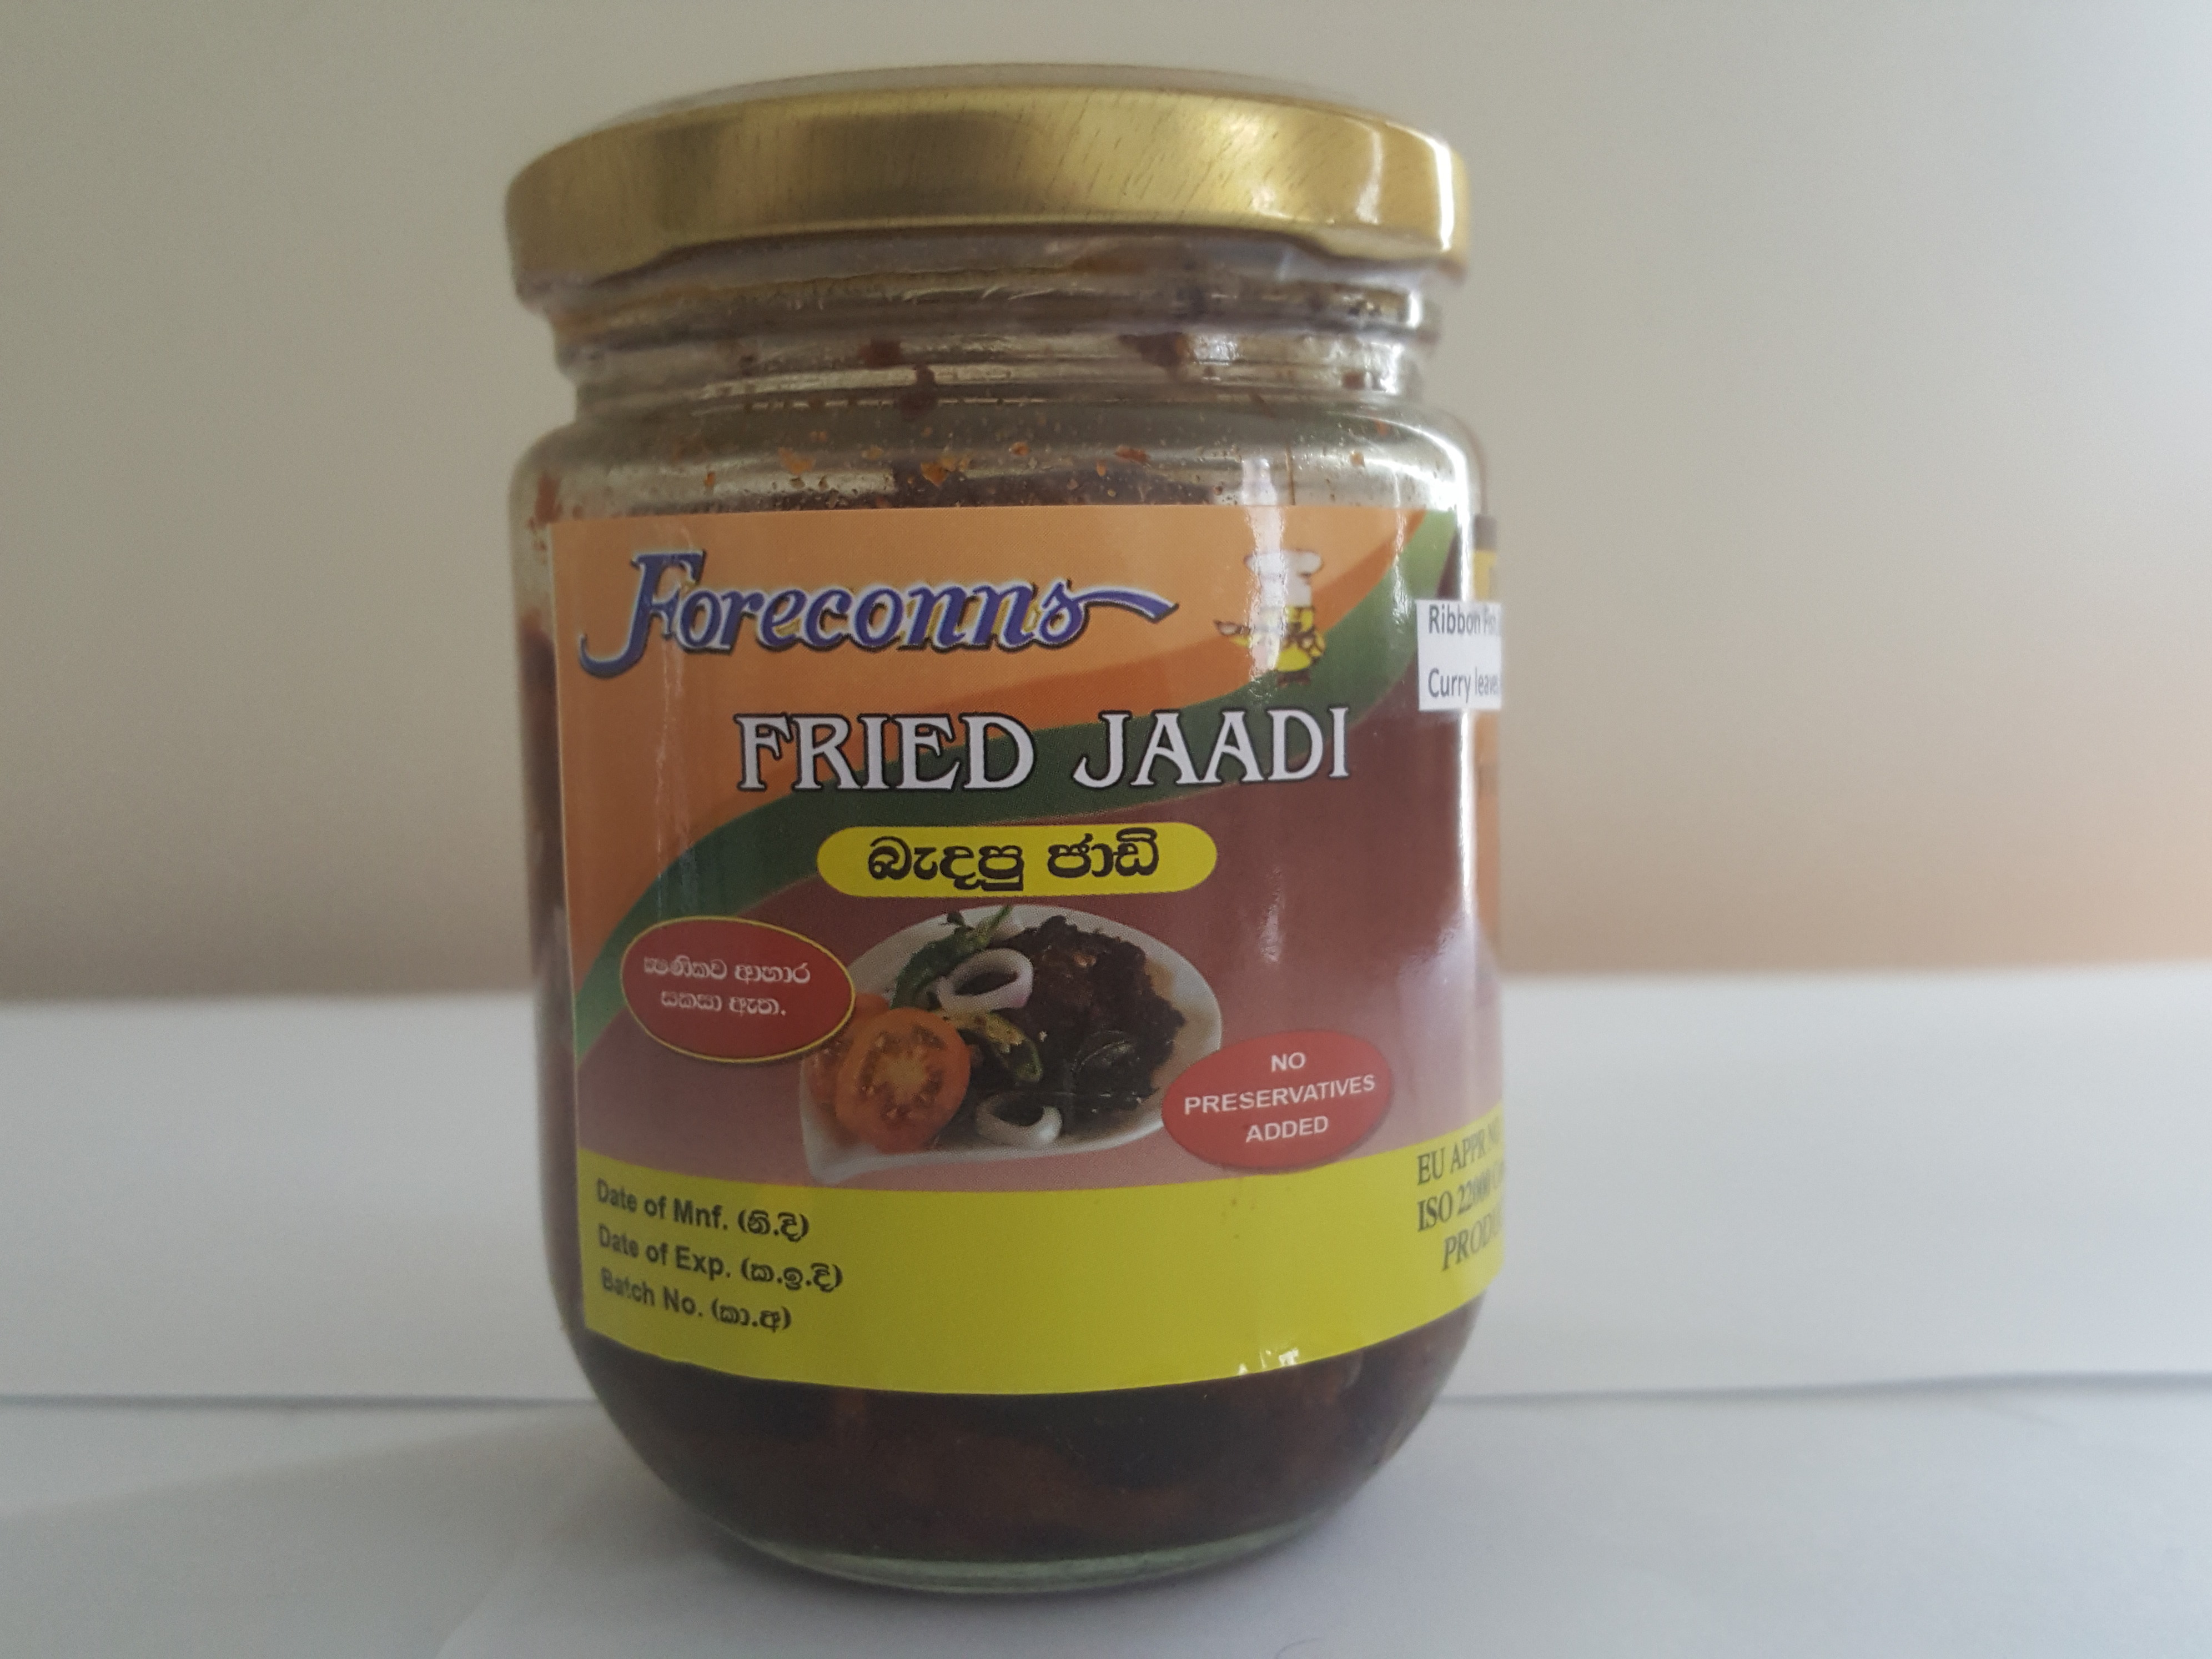 Fried Jaadi - Foreconns 200g